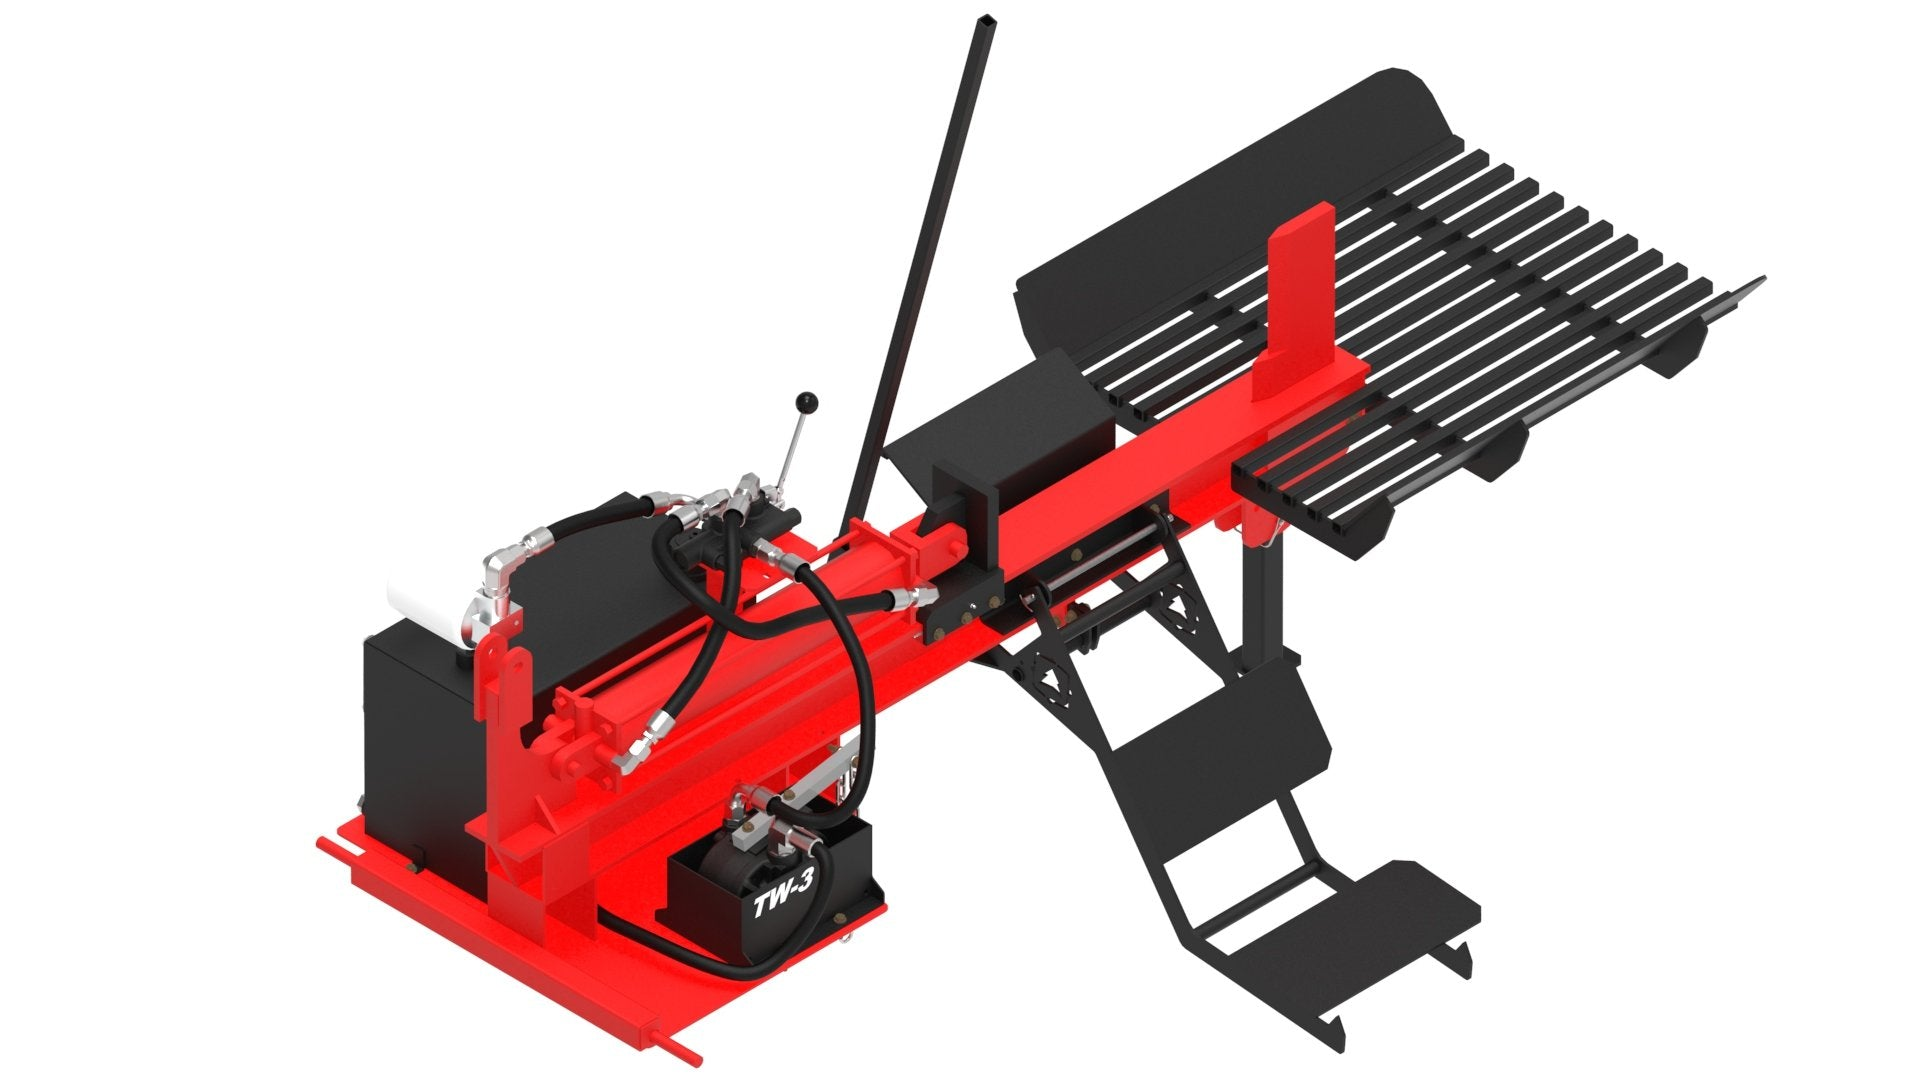 TW-3 Table Grate Log Lift